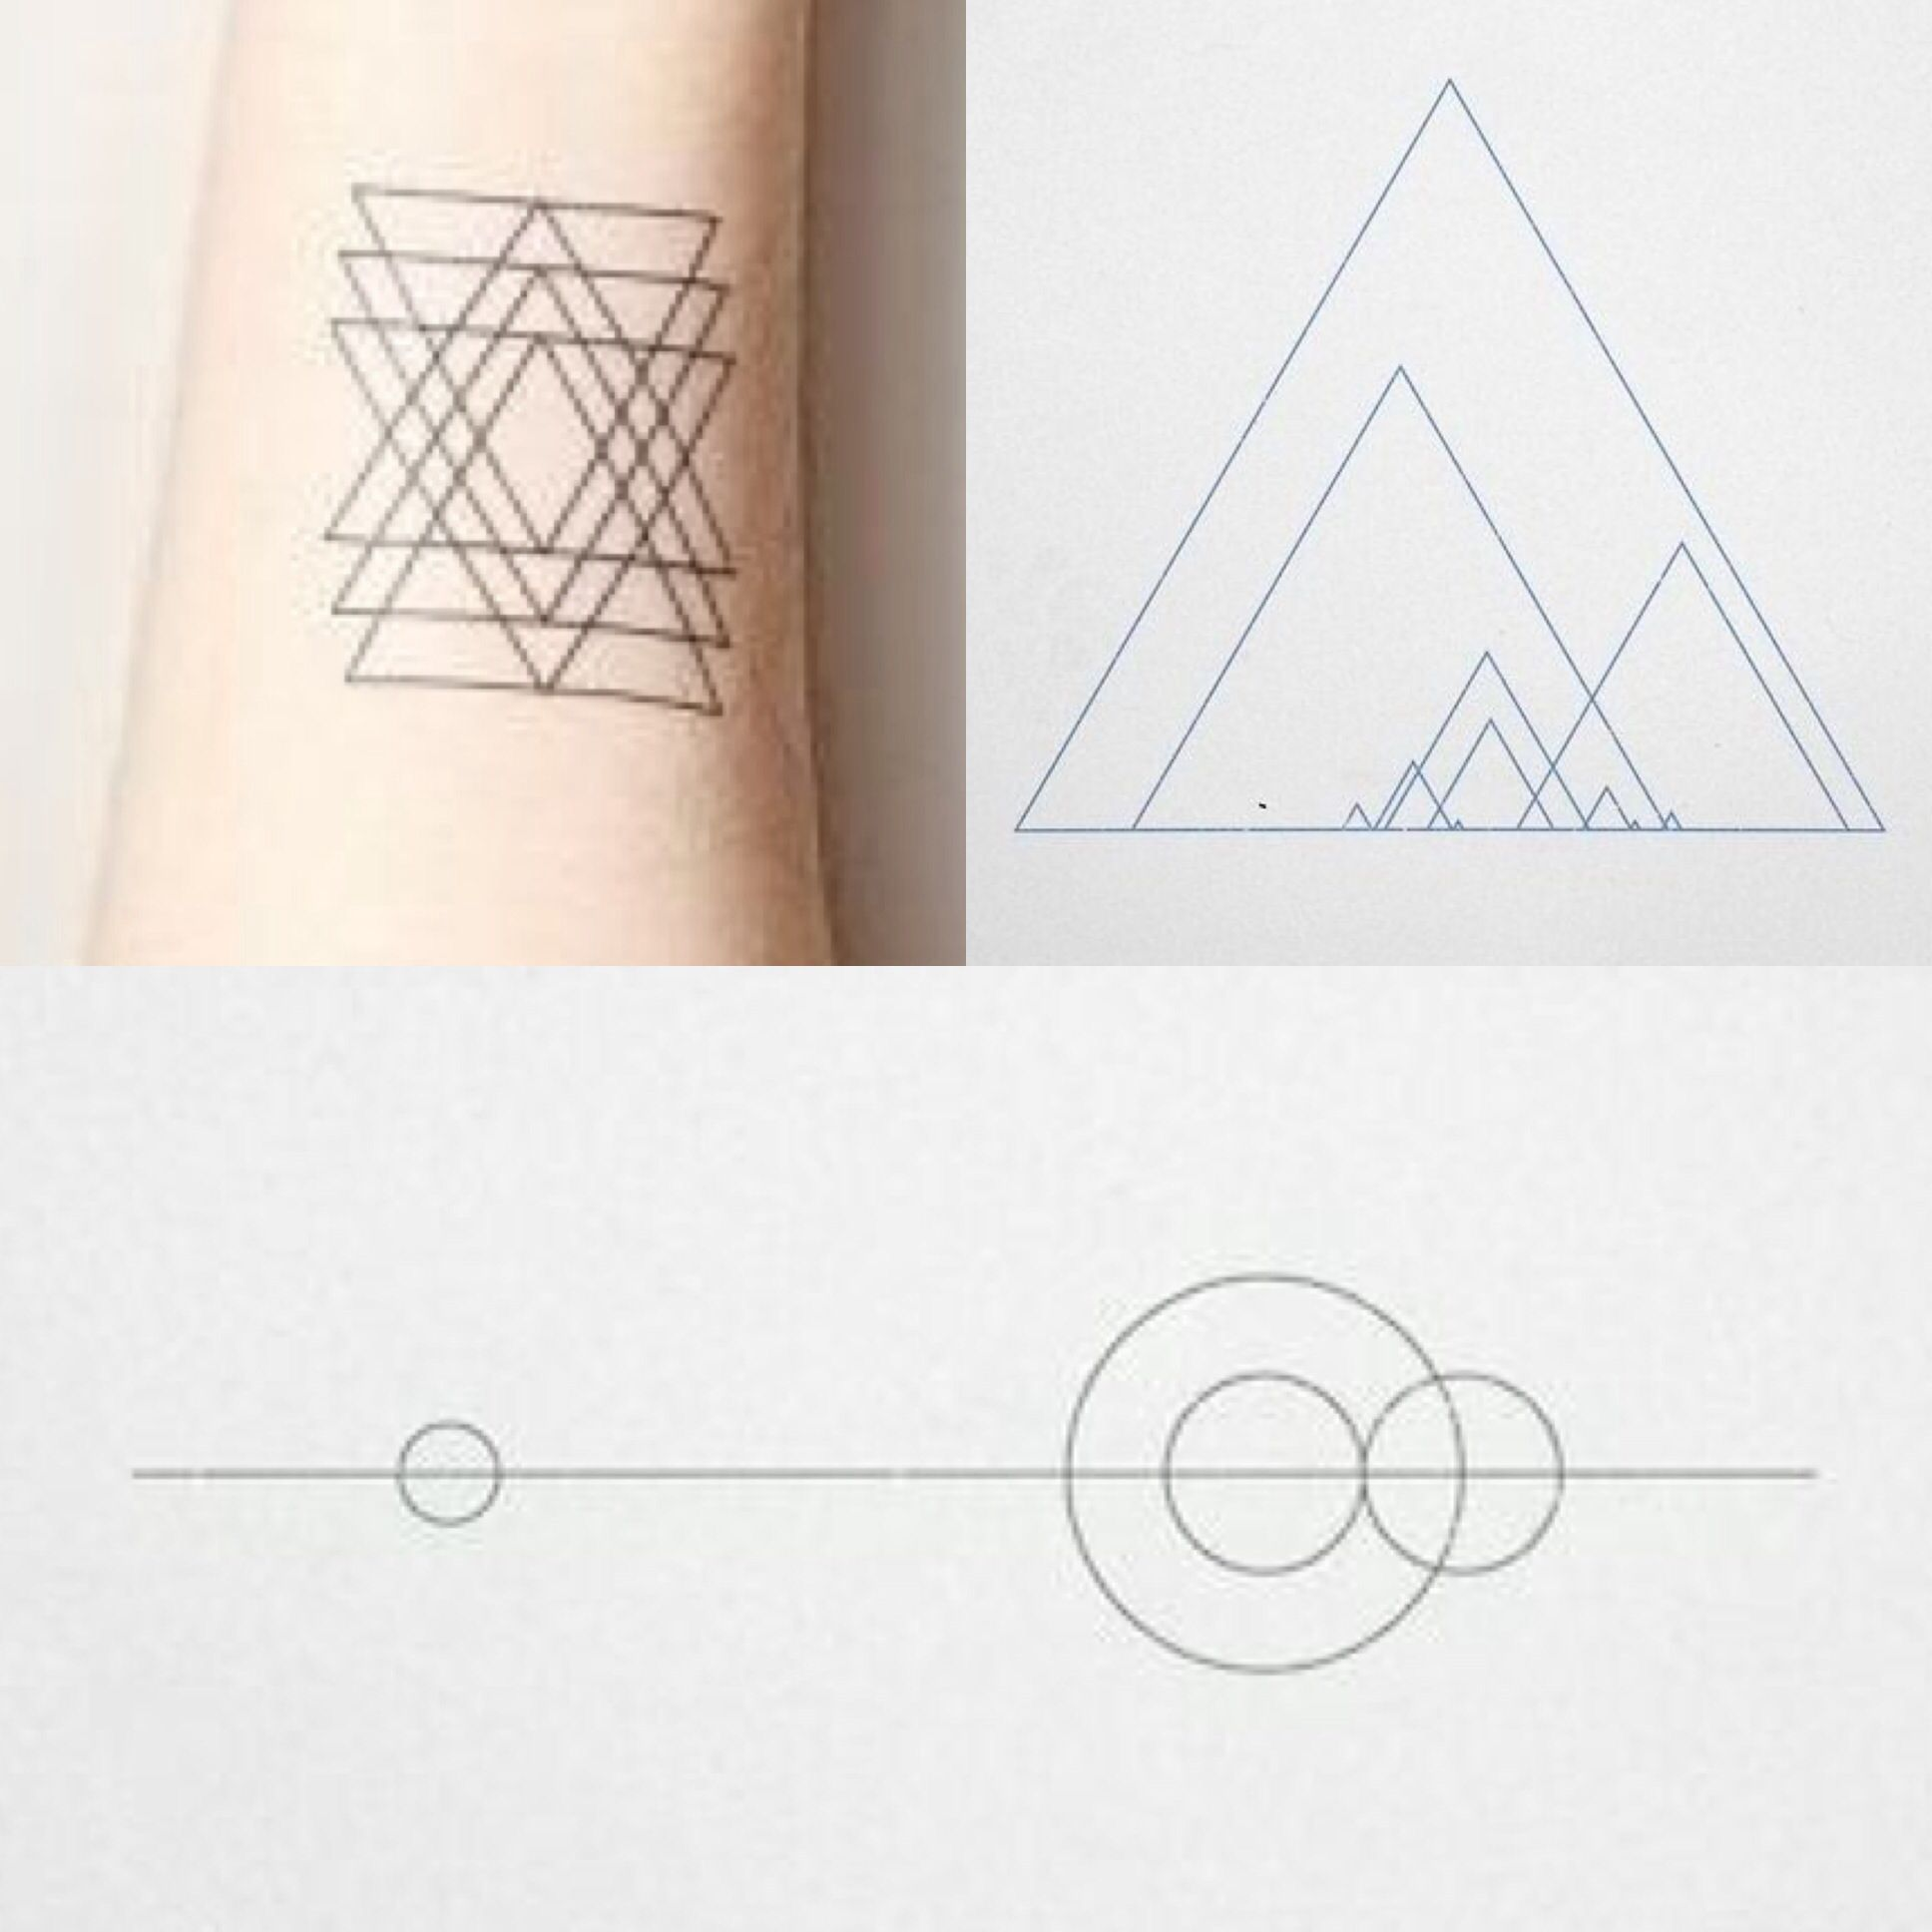 Equilibrium Balance Humility Tattoo Ideas Lending To The Idea That There Is Always Something Bigger Than Us Balance Tattoo Little Tattoos Symbolic Tattoos